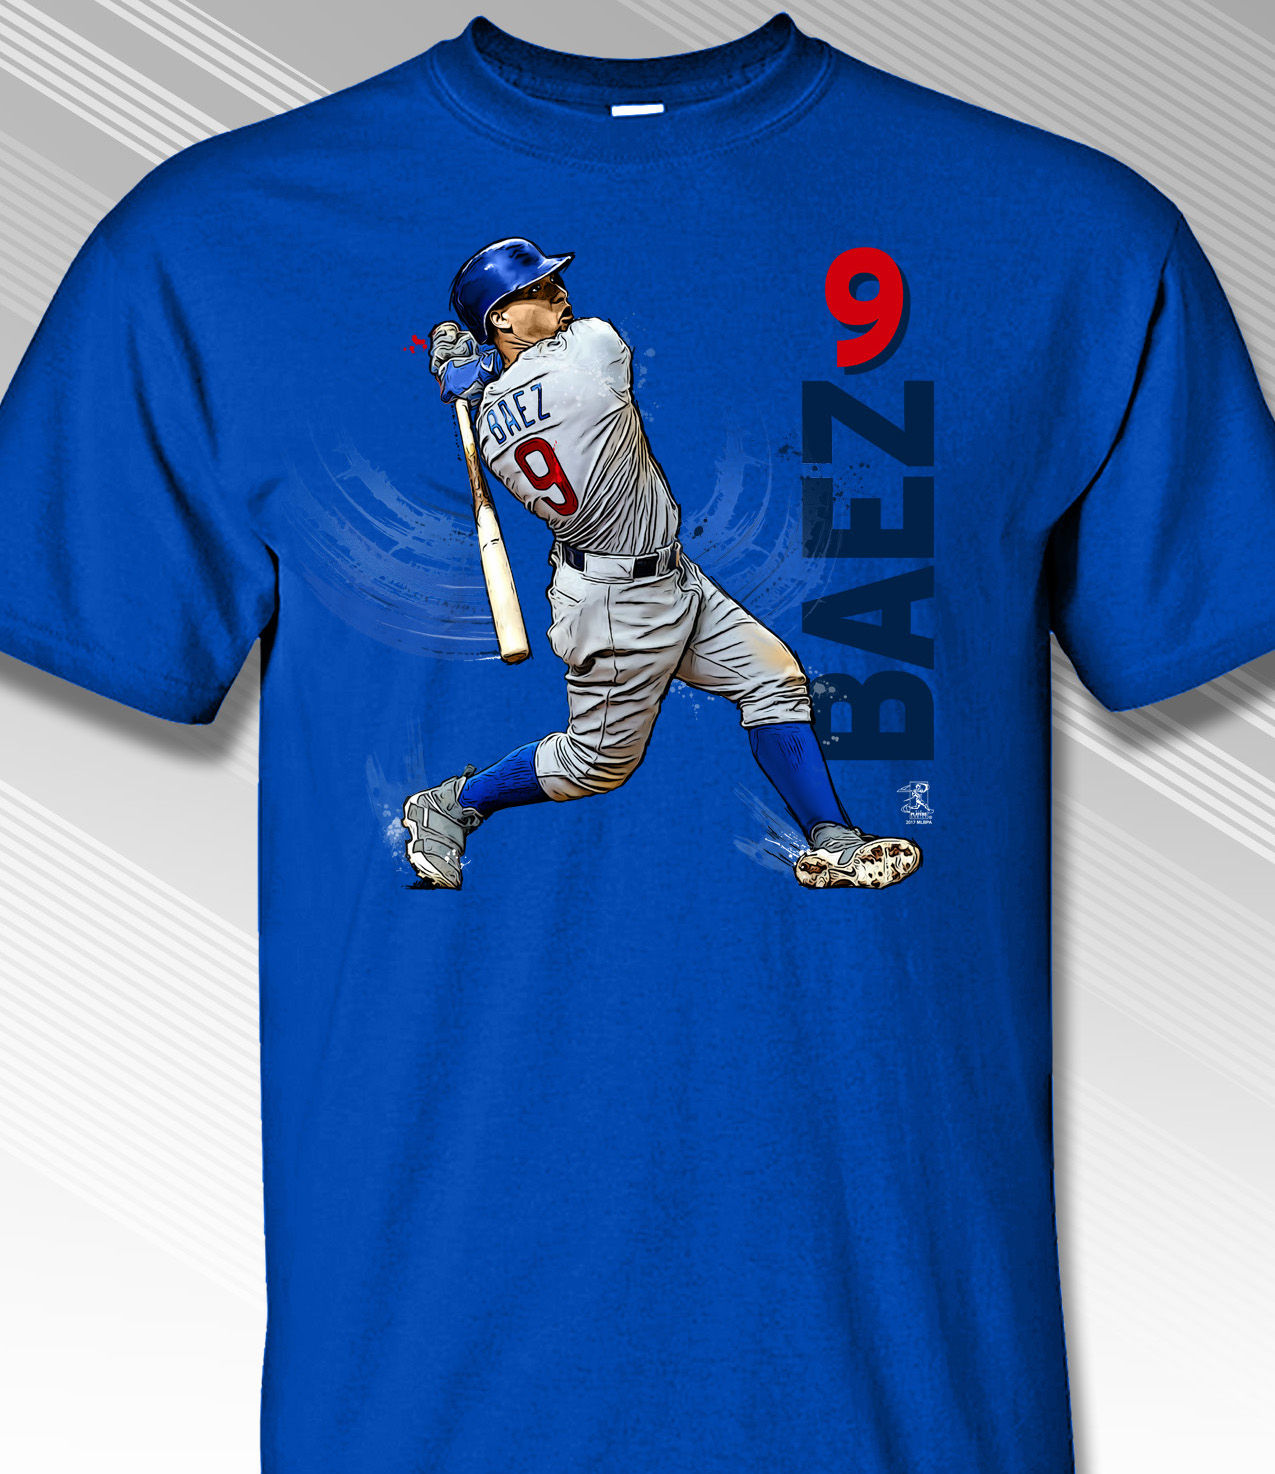 Javier B�ez Swing in Motion Chicago 9 T-Shirt<br>Short or Long Sleeve<br>Youth Med to Adult 4X